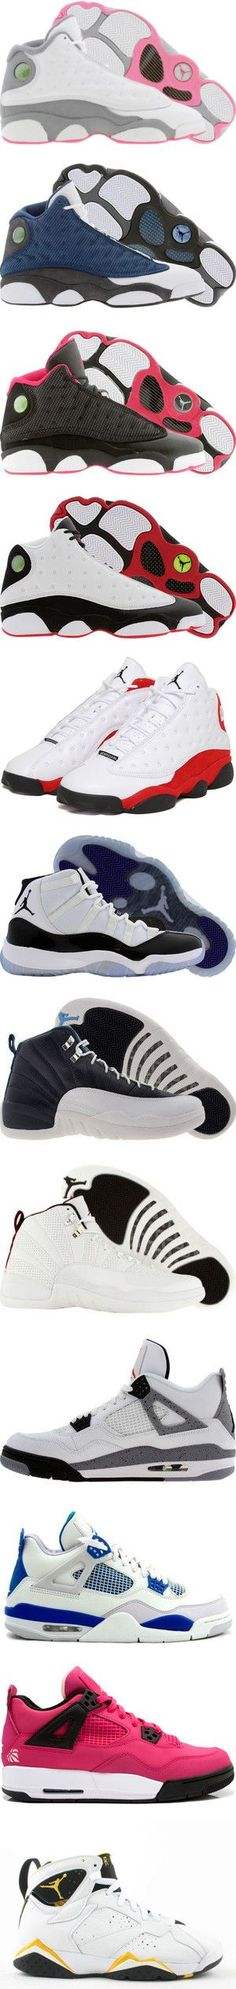 """Air Jordan's"" by yomo-bribri ❤ liked on Polyvore"